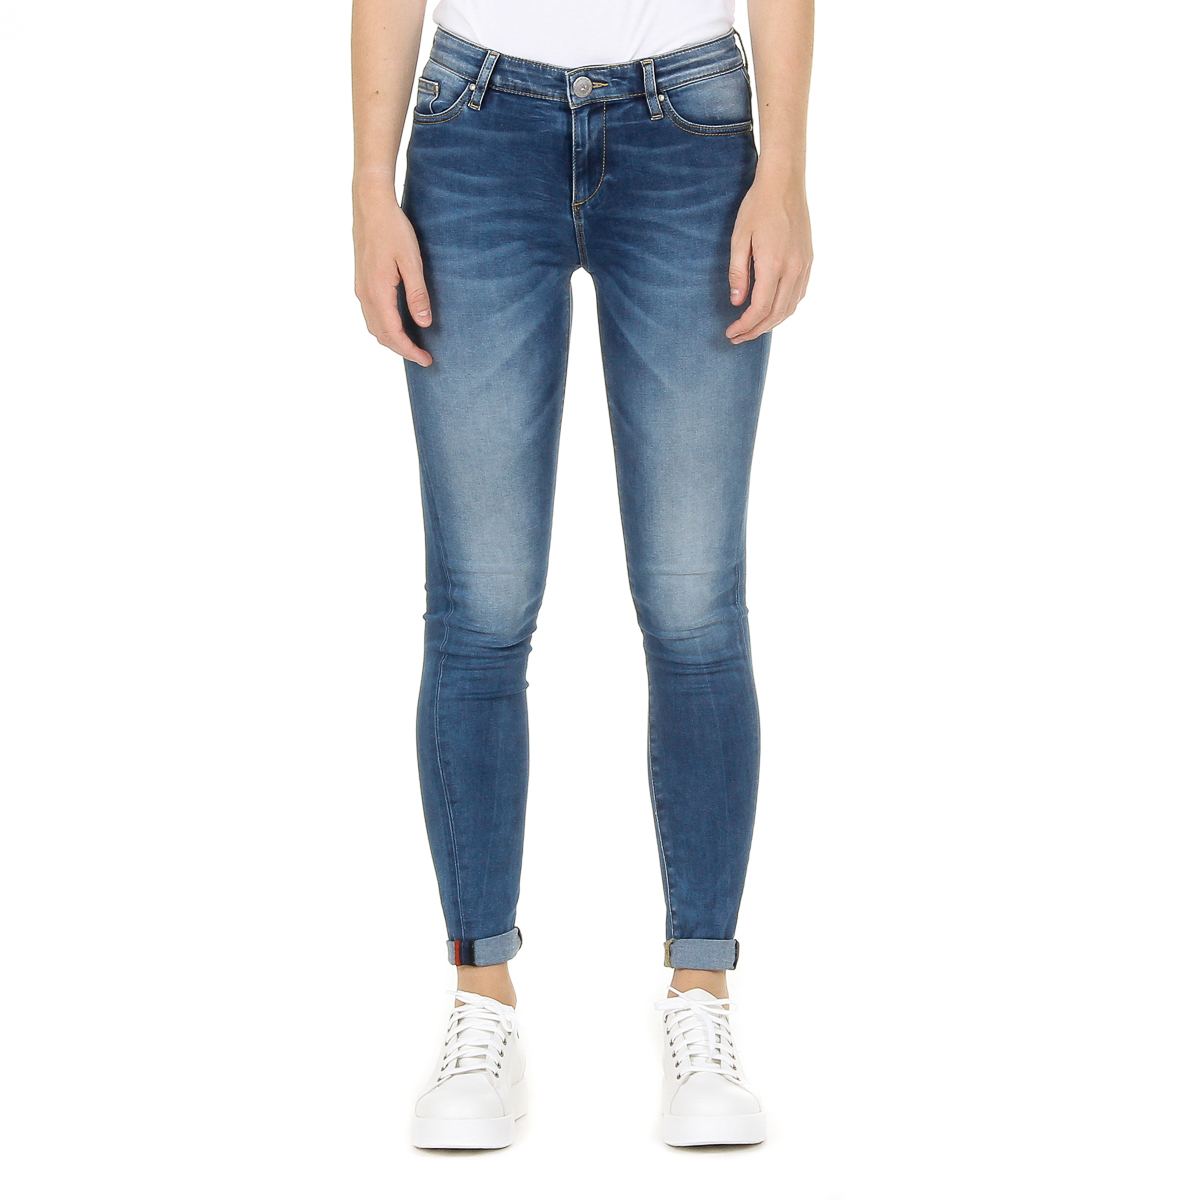 Primary image for Andrew Charles Womens Jeans Denim CLAIRE